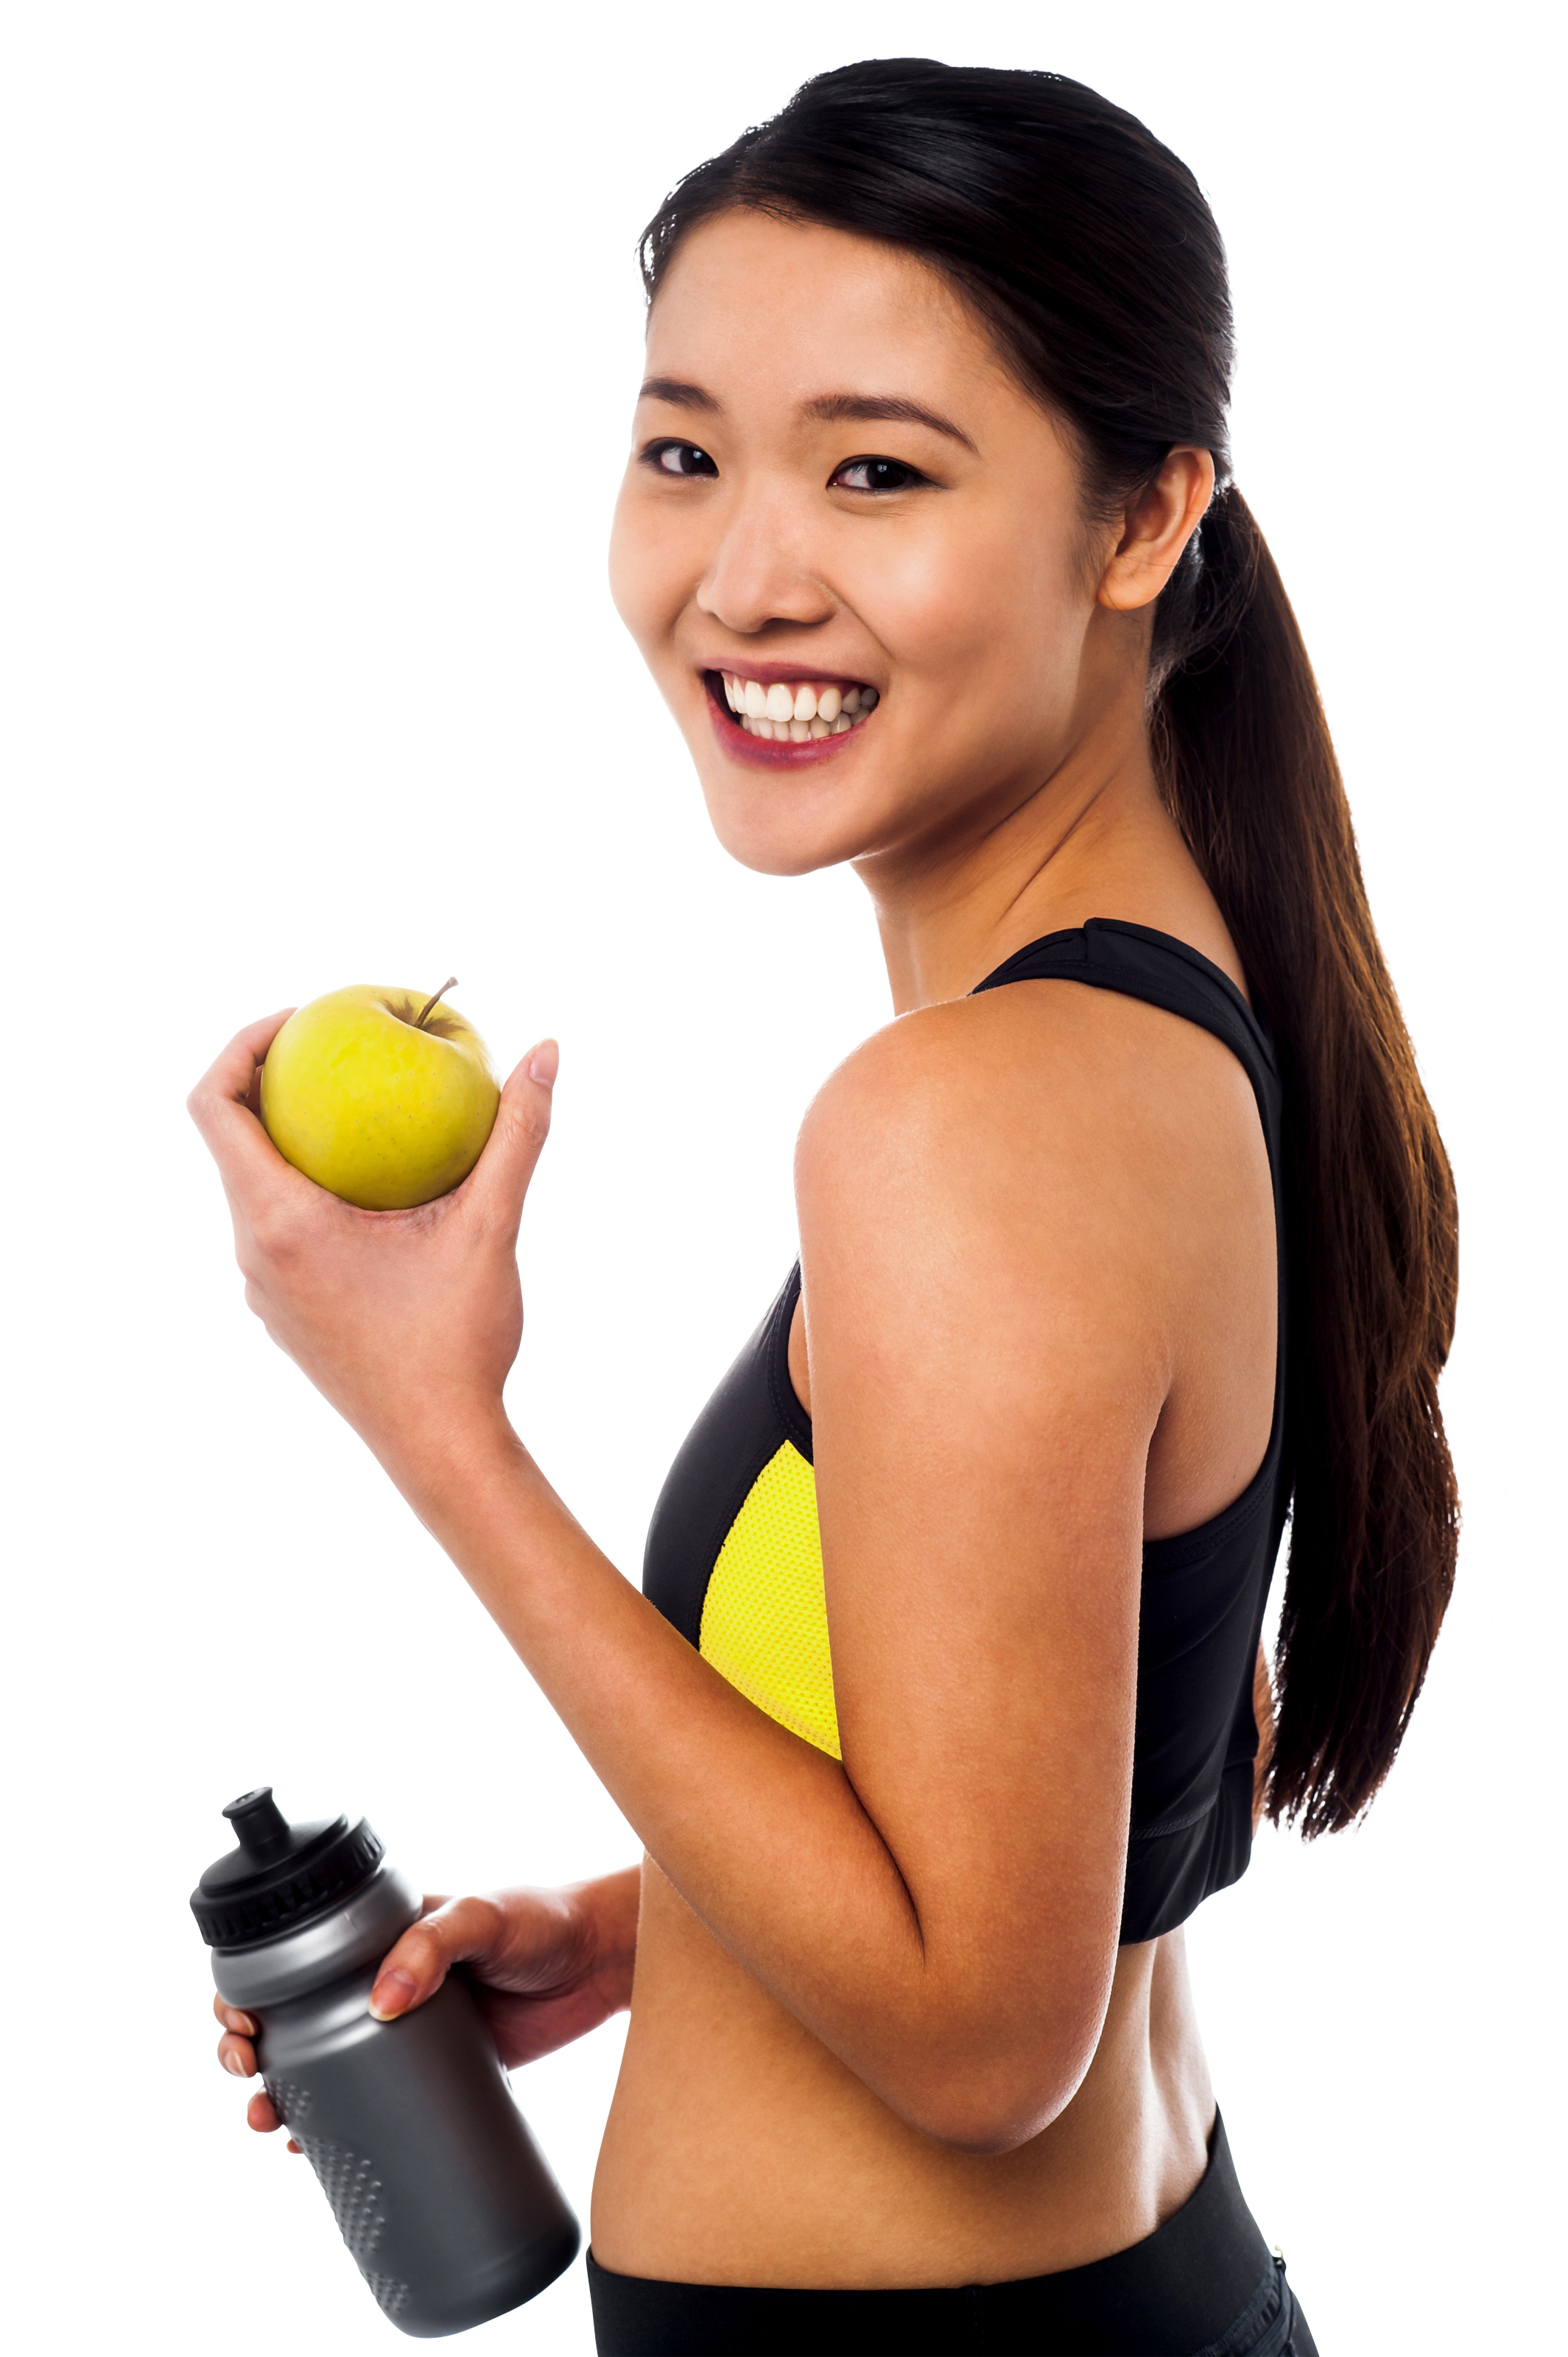 Girl With Fruits PNG Image